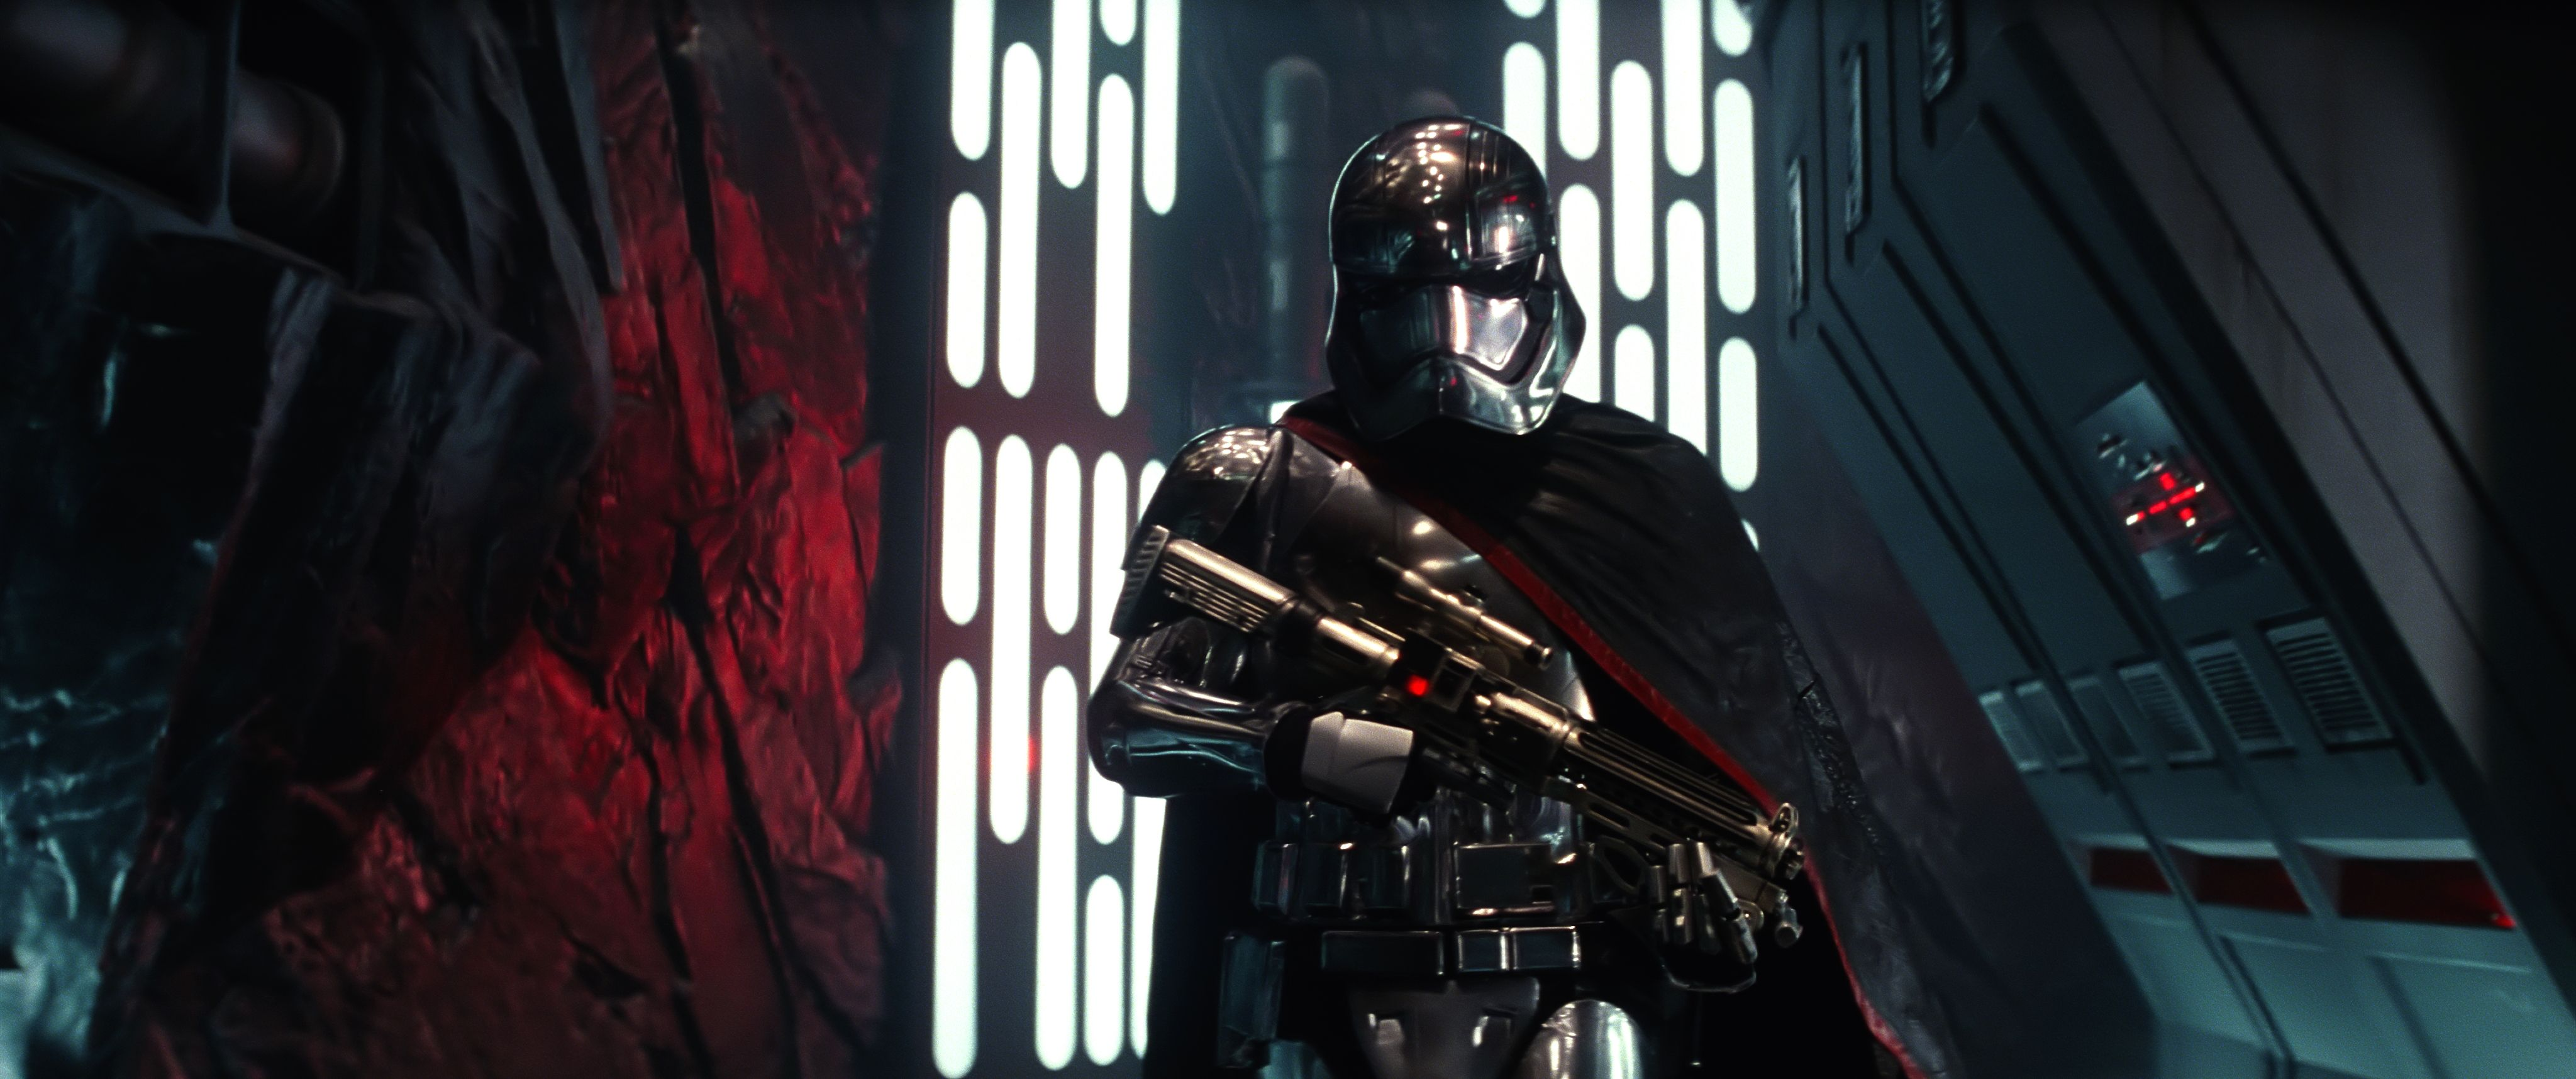 26 Captain Phasma HD Wallpapers | Backgrounds - Wallpaper Abyss